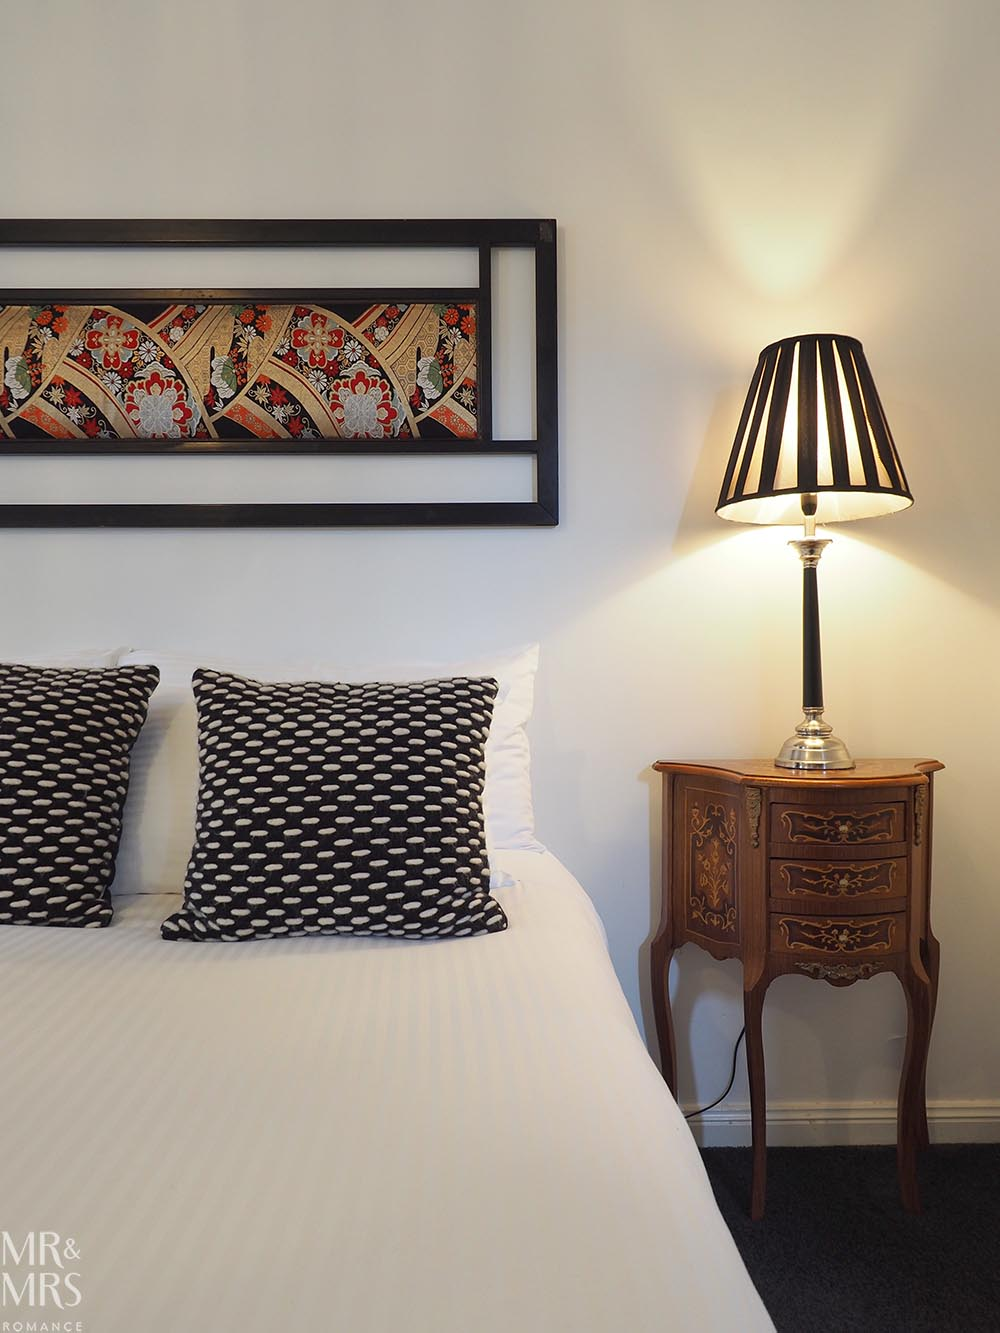 Where to stay in the Hunter Region, NSW - The Bronte Boutique Hotel, Morpeth - bed